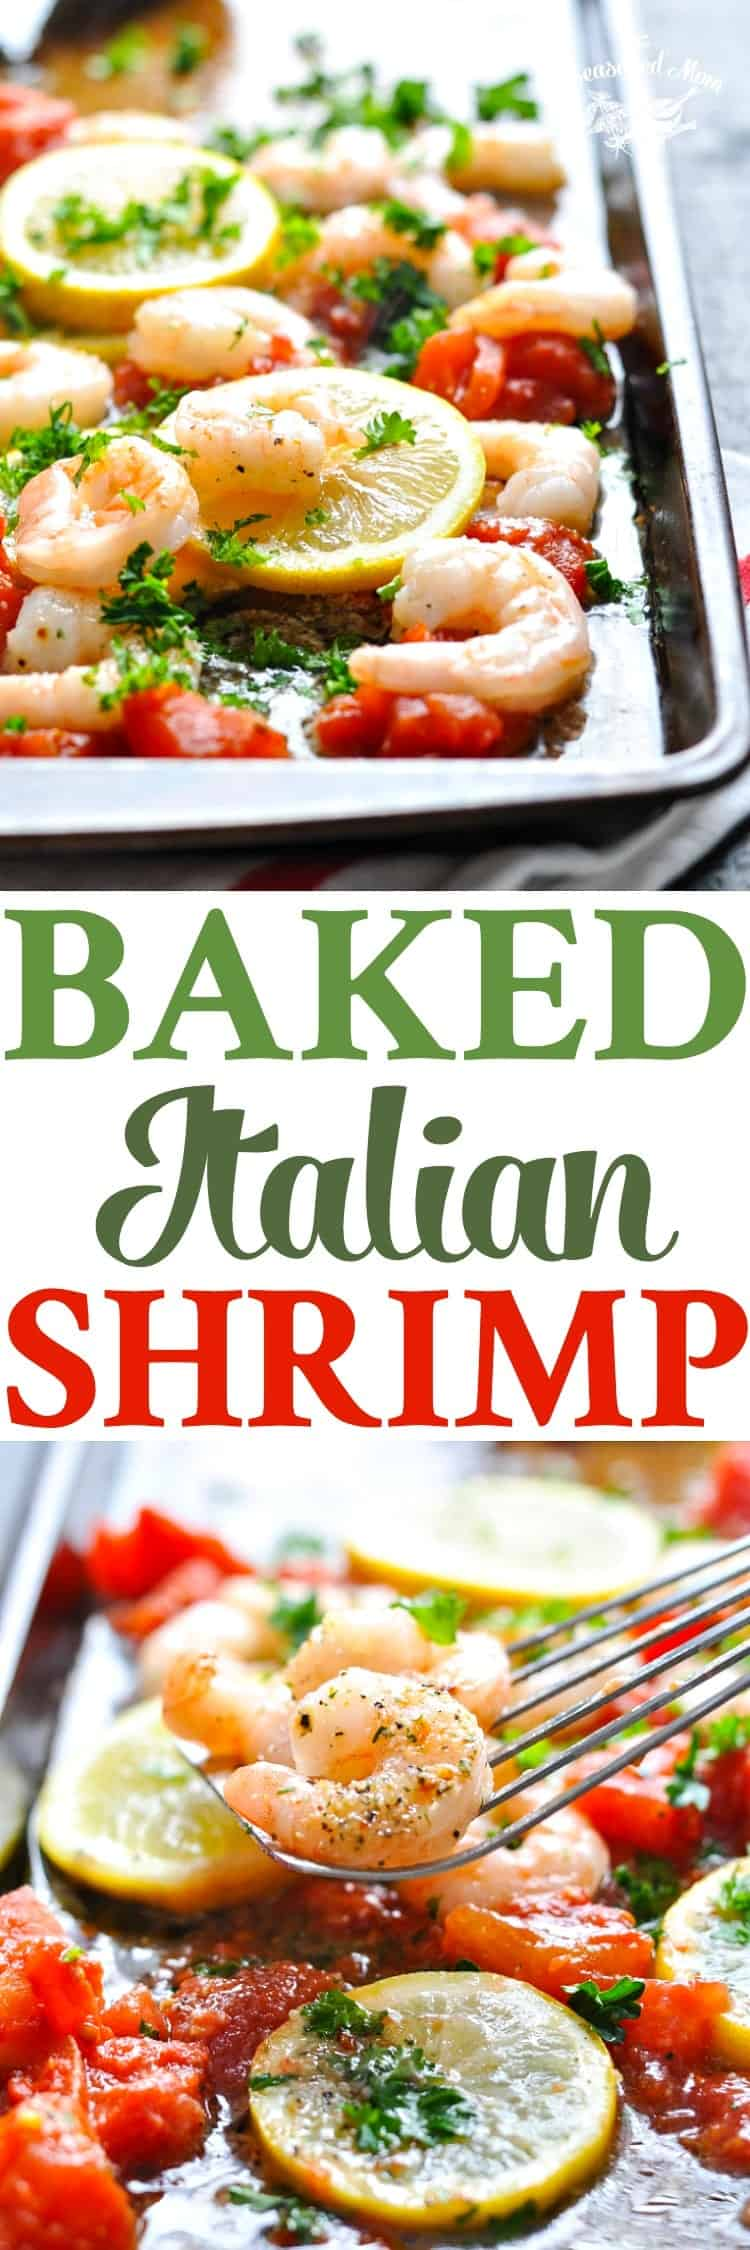 This Baked Italian Shrimp is an easy dinner that's ready in just 20 minutes! Seafood | Shrimp Recipes | Dinner Ideas #seafood #shrimp #dinner